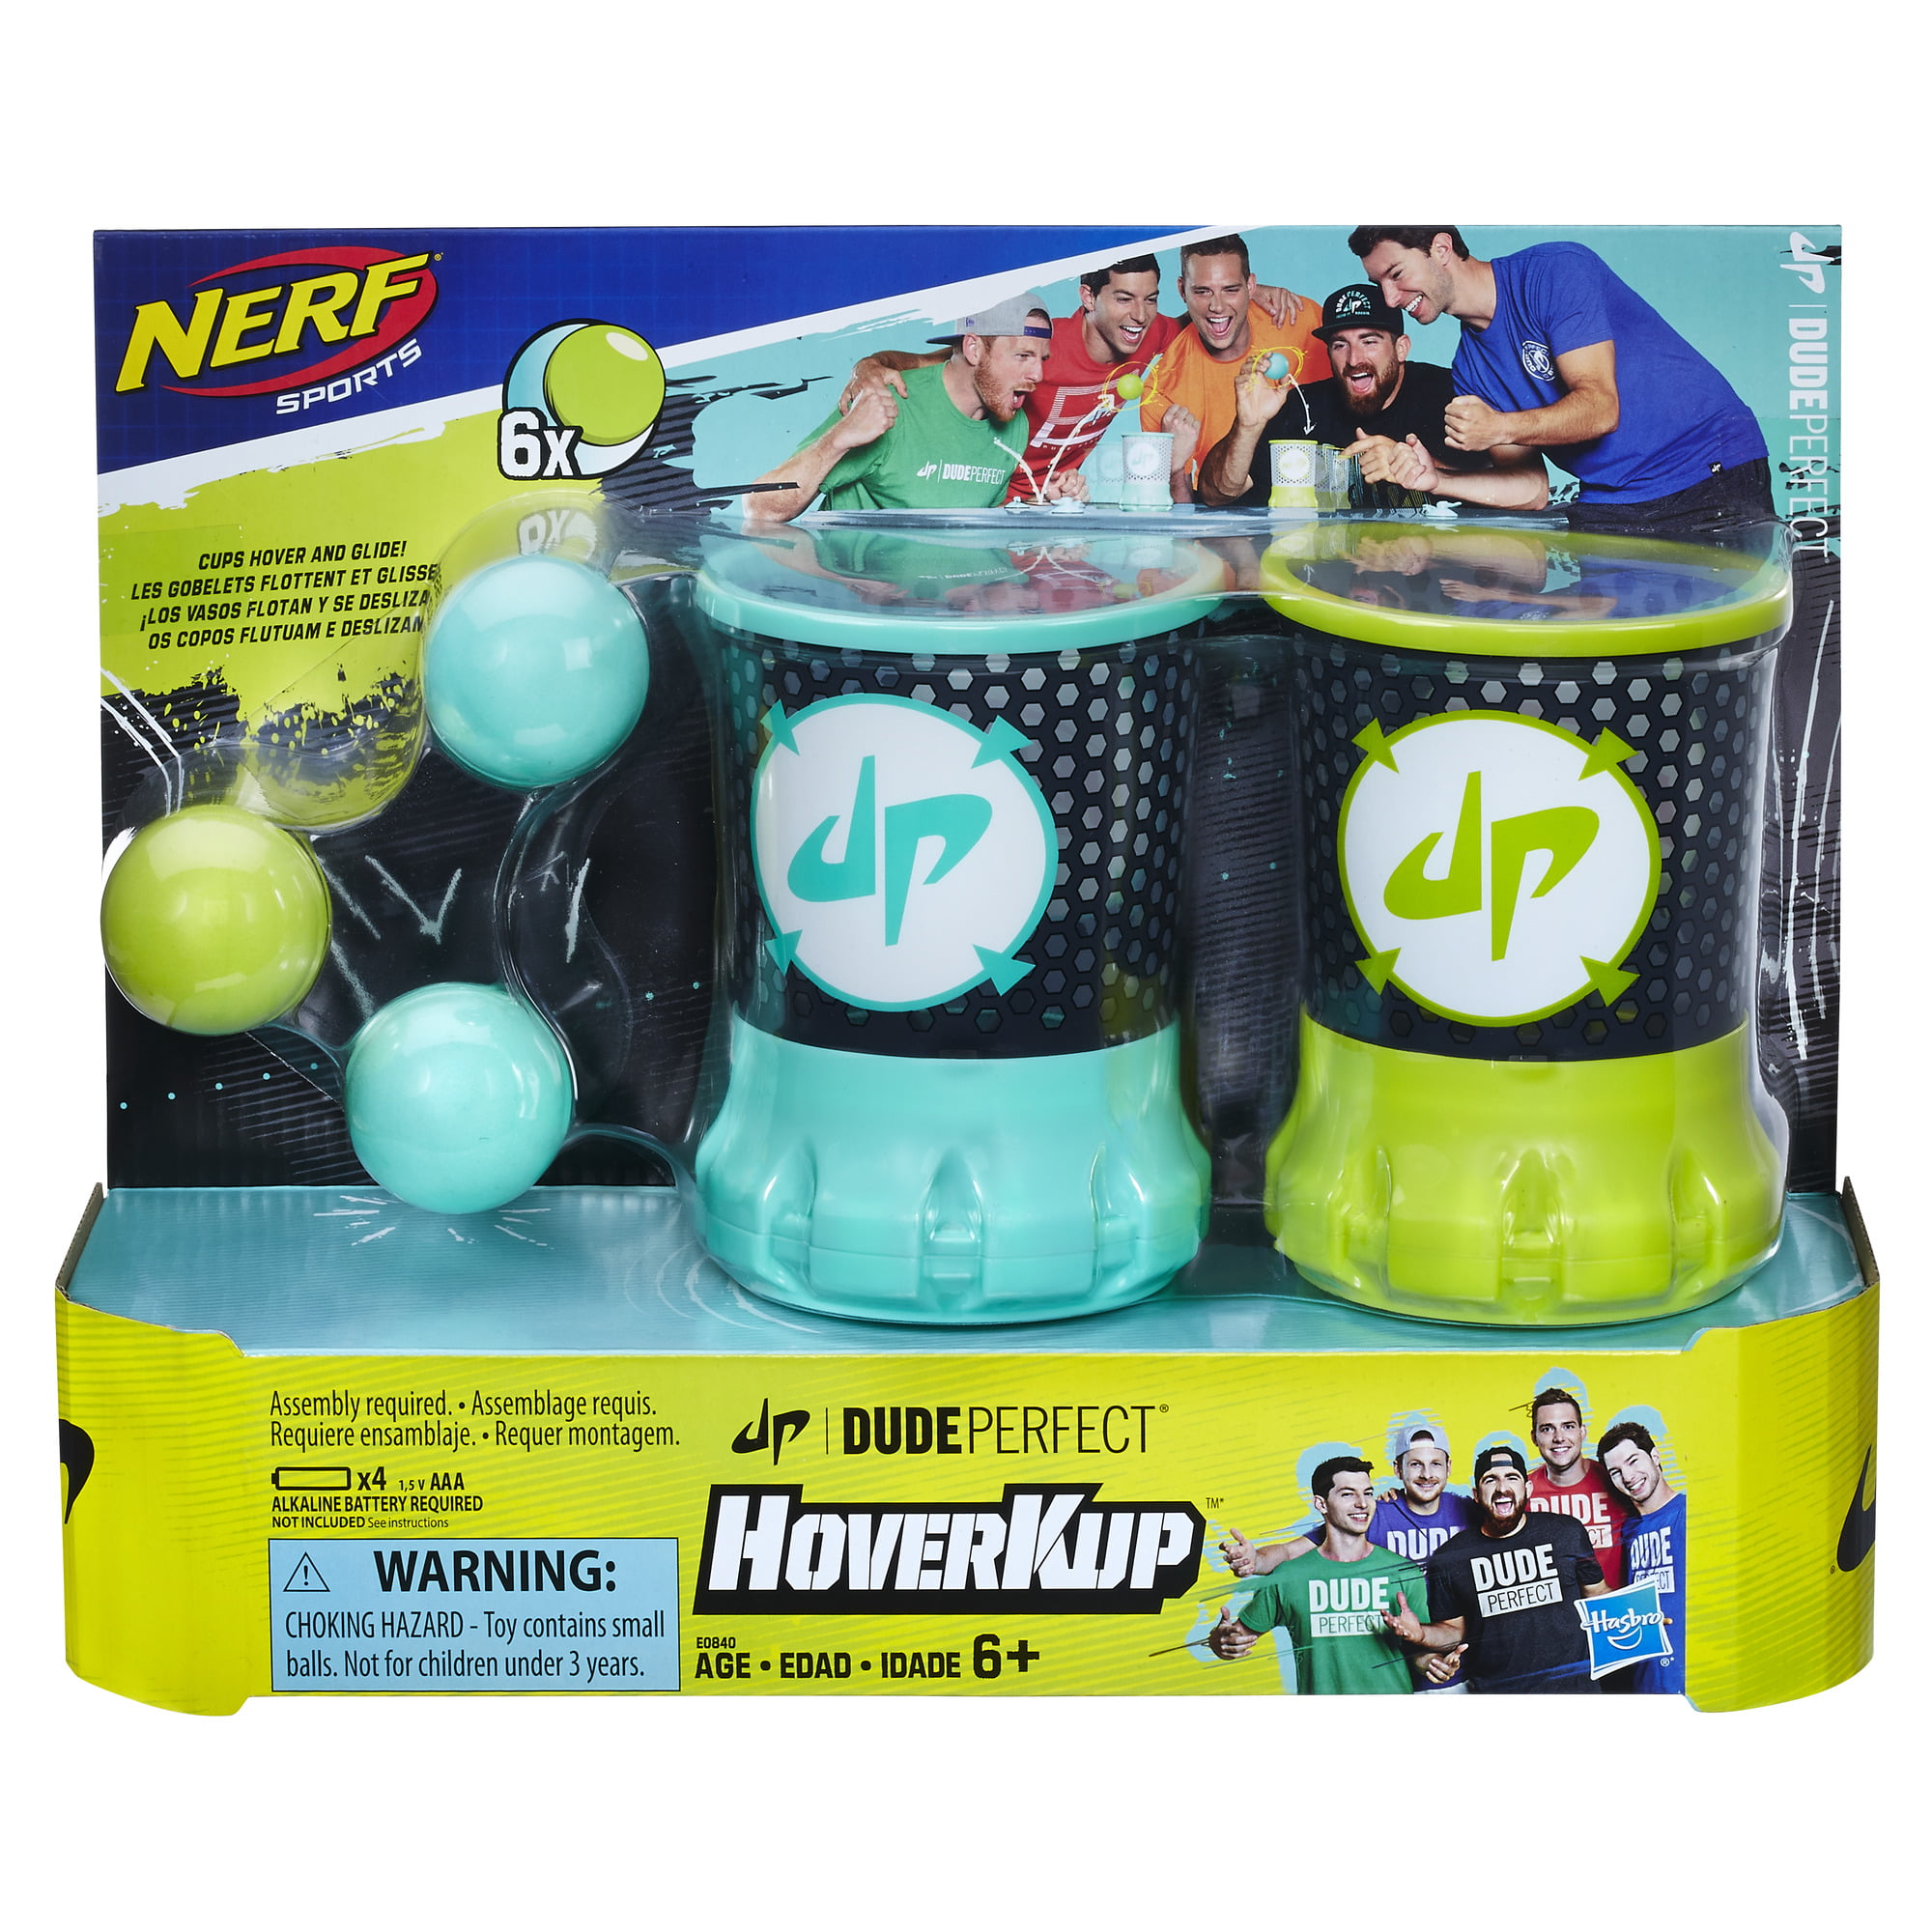 Nerf Sports Dude Perfect HoverKup by Hasbro